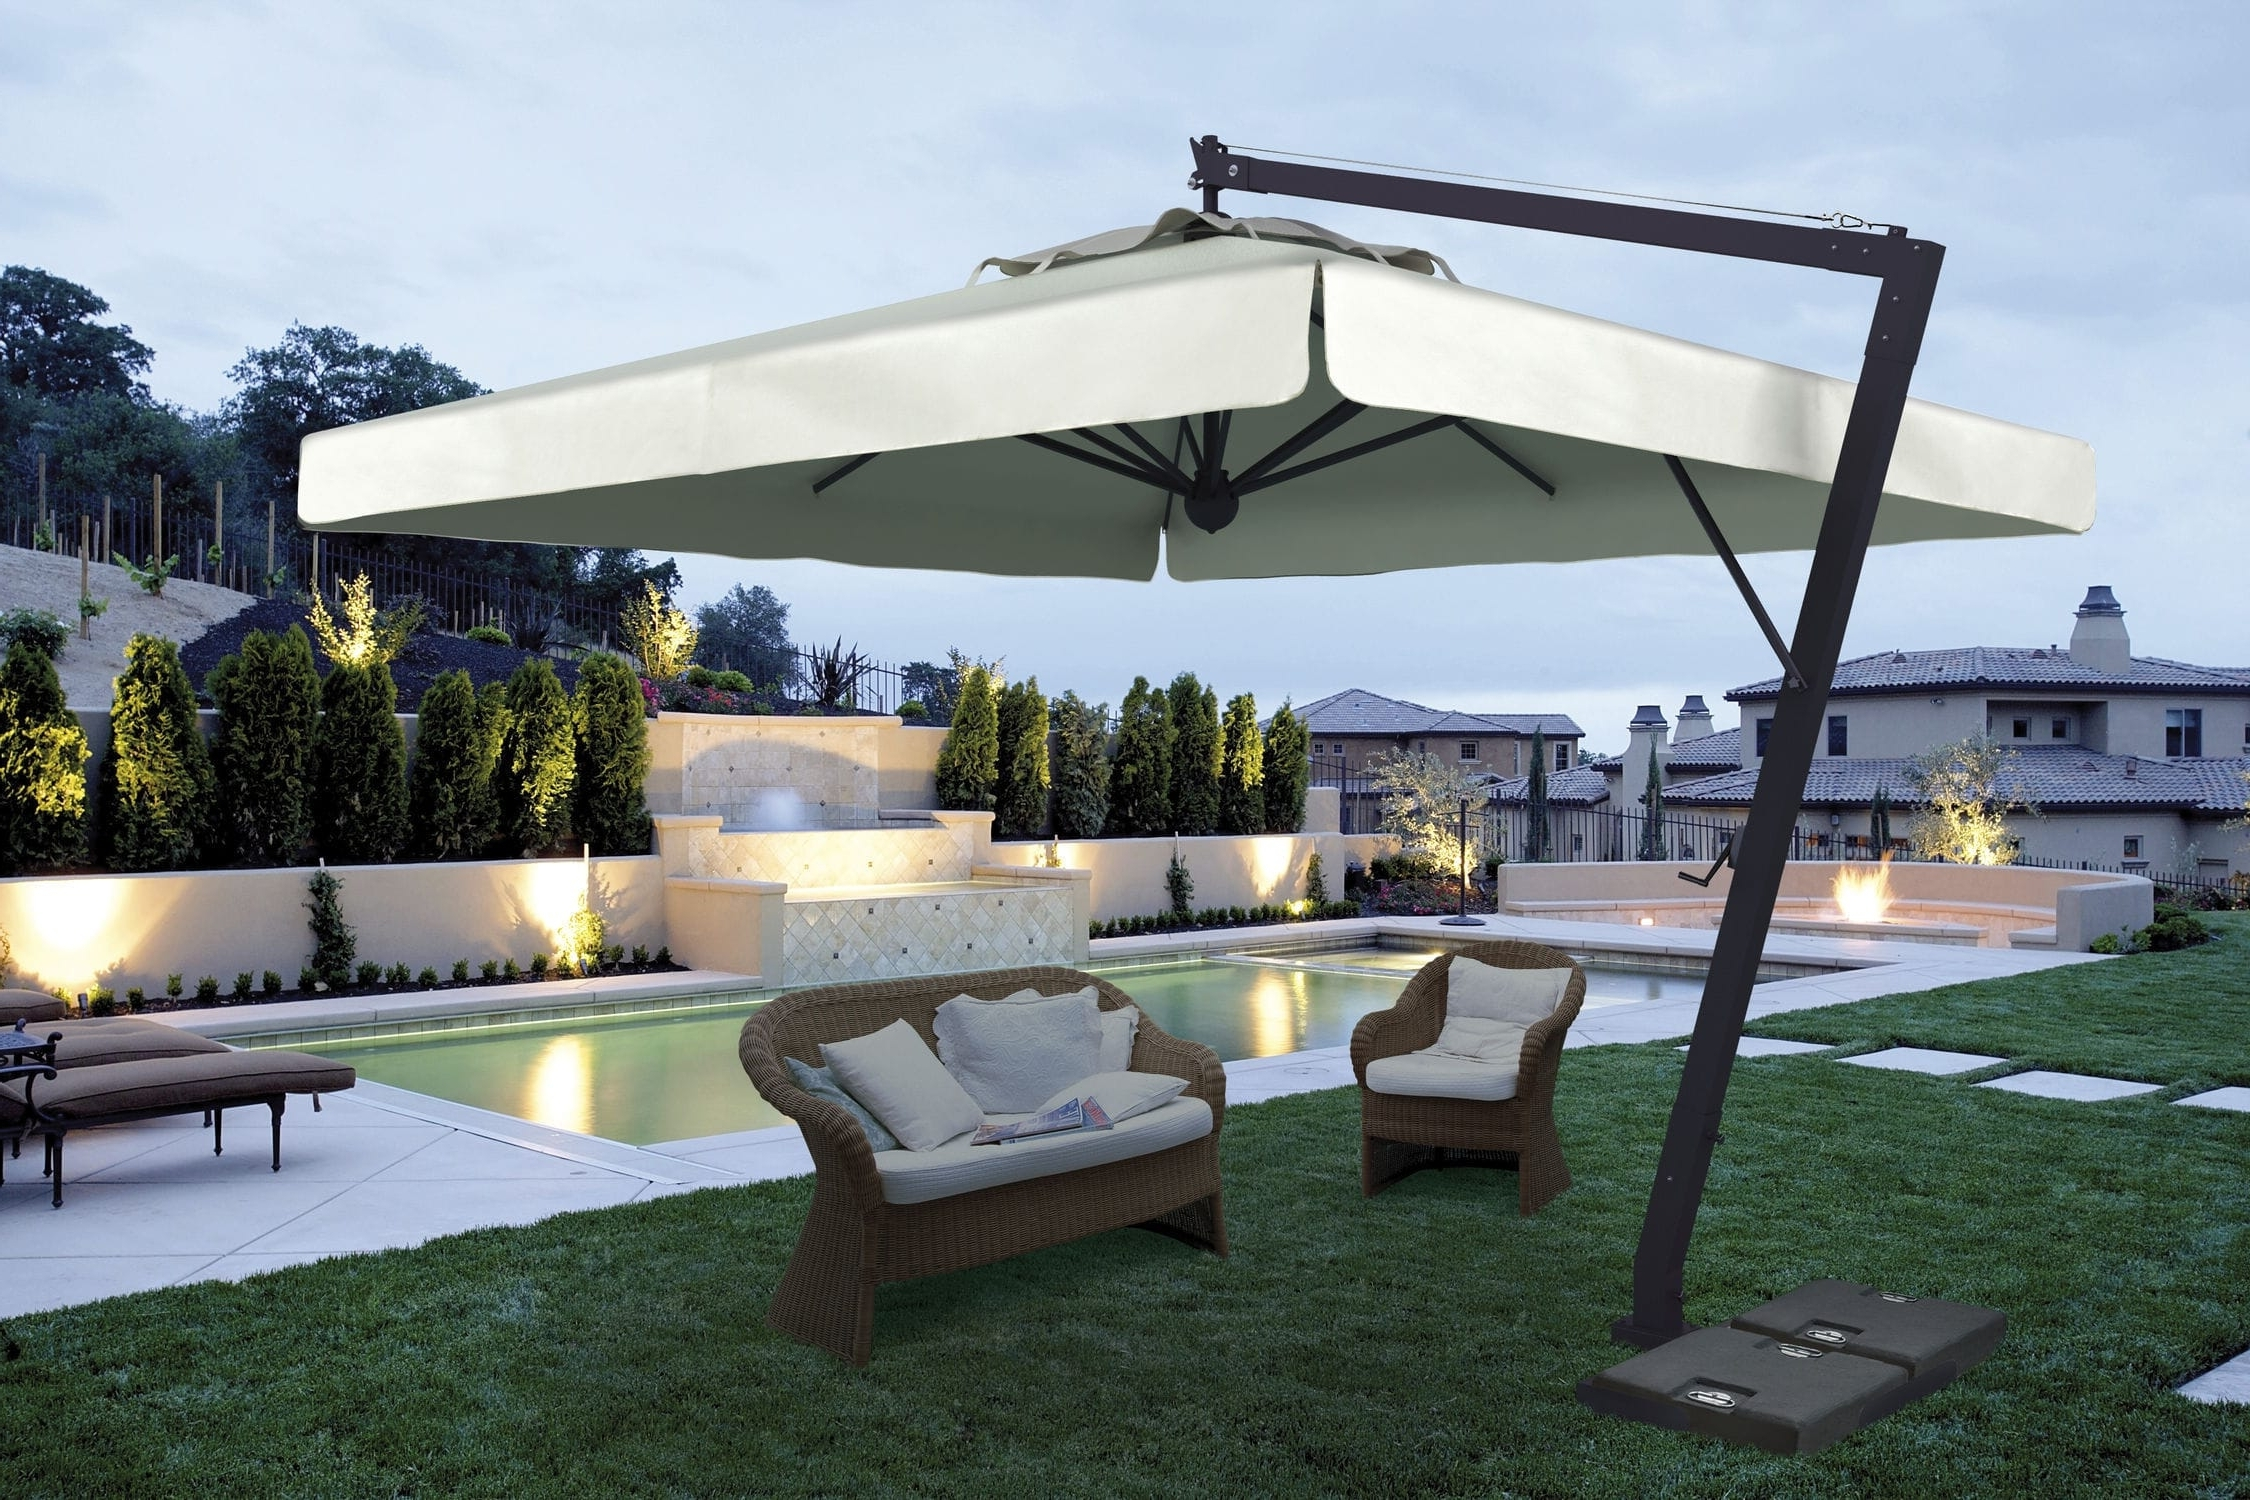 Well Known Offset Patio Umbrella / Commercial / Aluminum / Steel – Leonardo With Regard To Commercial Patio Umbrellas (View 20 of 20)